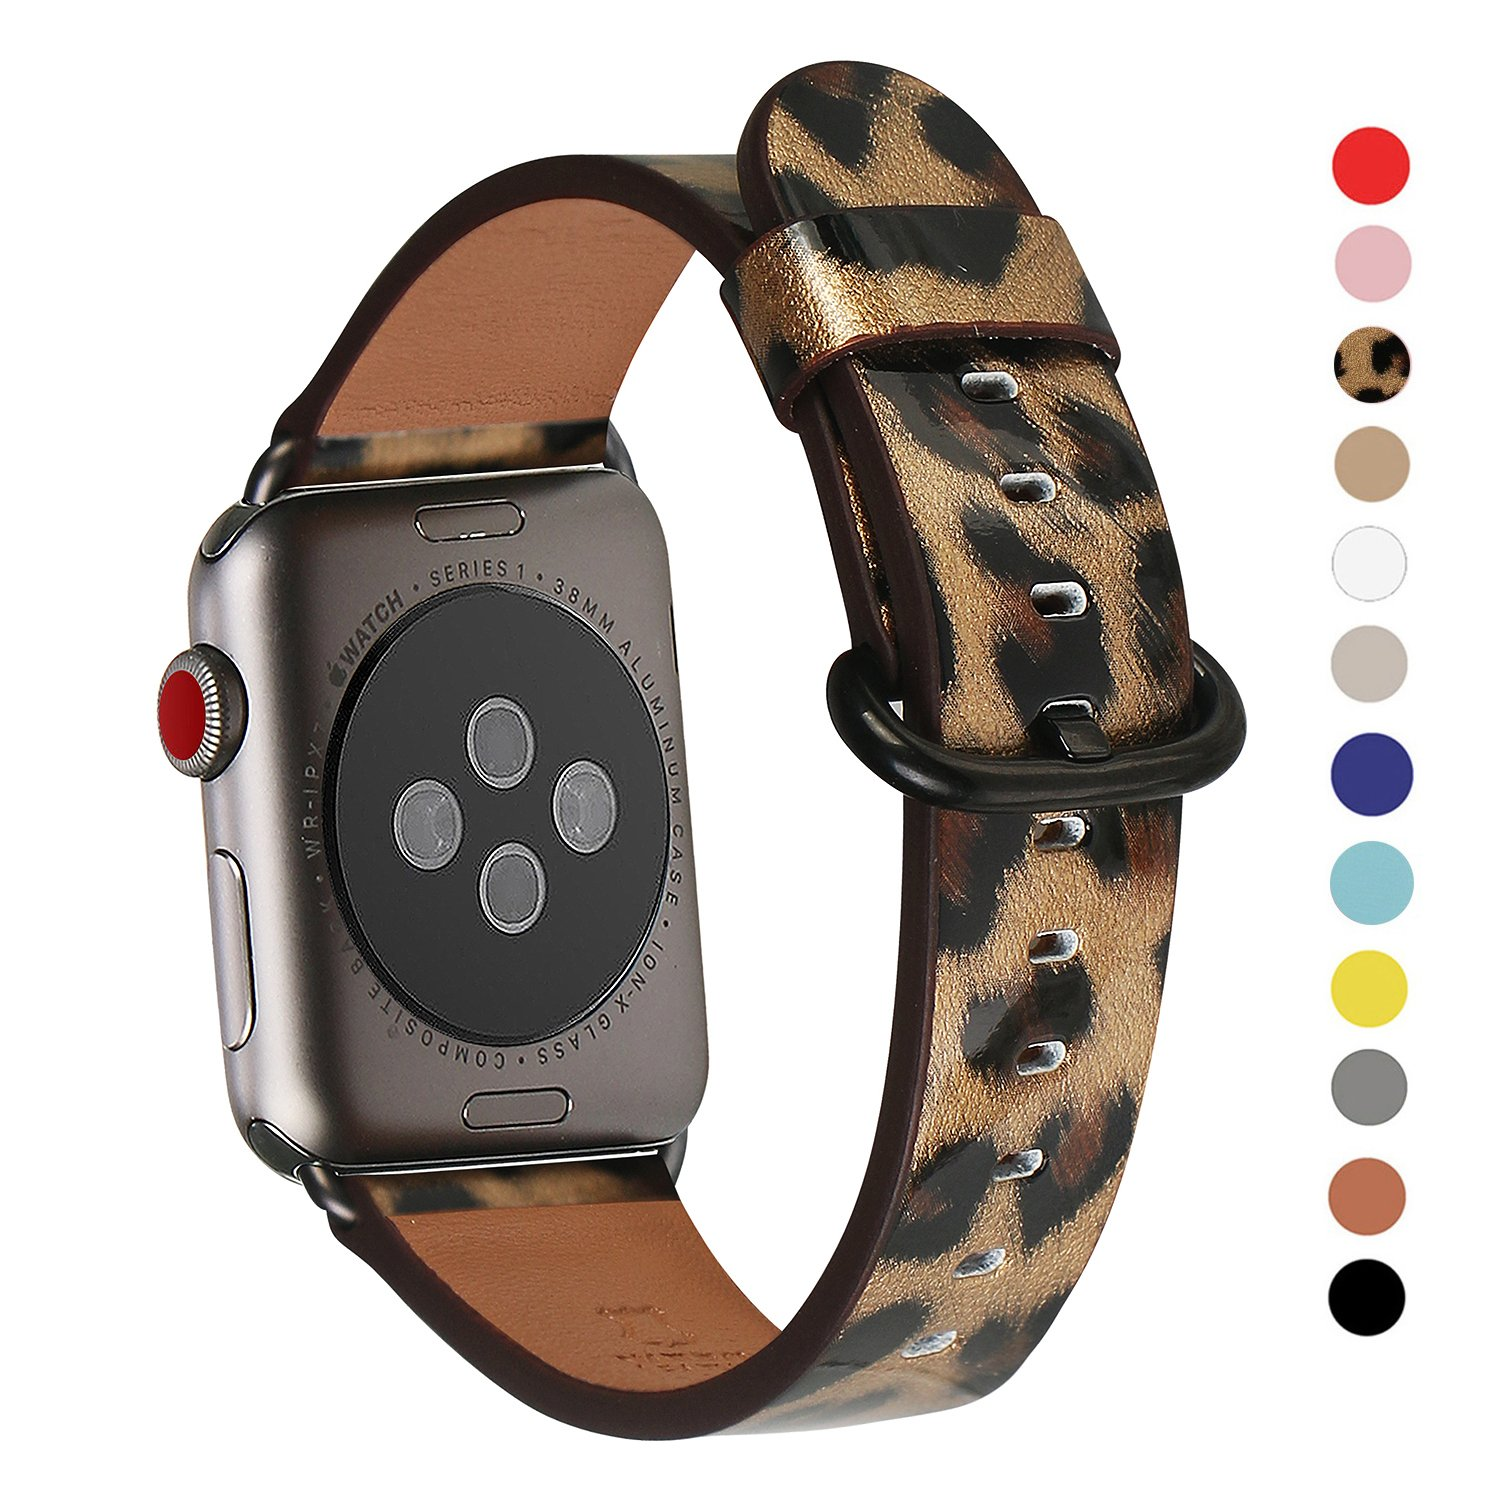 Apple Watch Band 38mm, WFEAGL Retro Top Grain Leather Band Replacement Strap with Stainless Steel Clasp for iWatch Series 2,Series 1,Sport, Edition (38mm Leopard Band+Black Buckle)